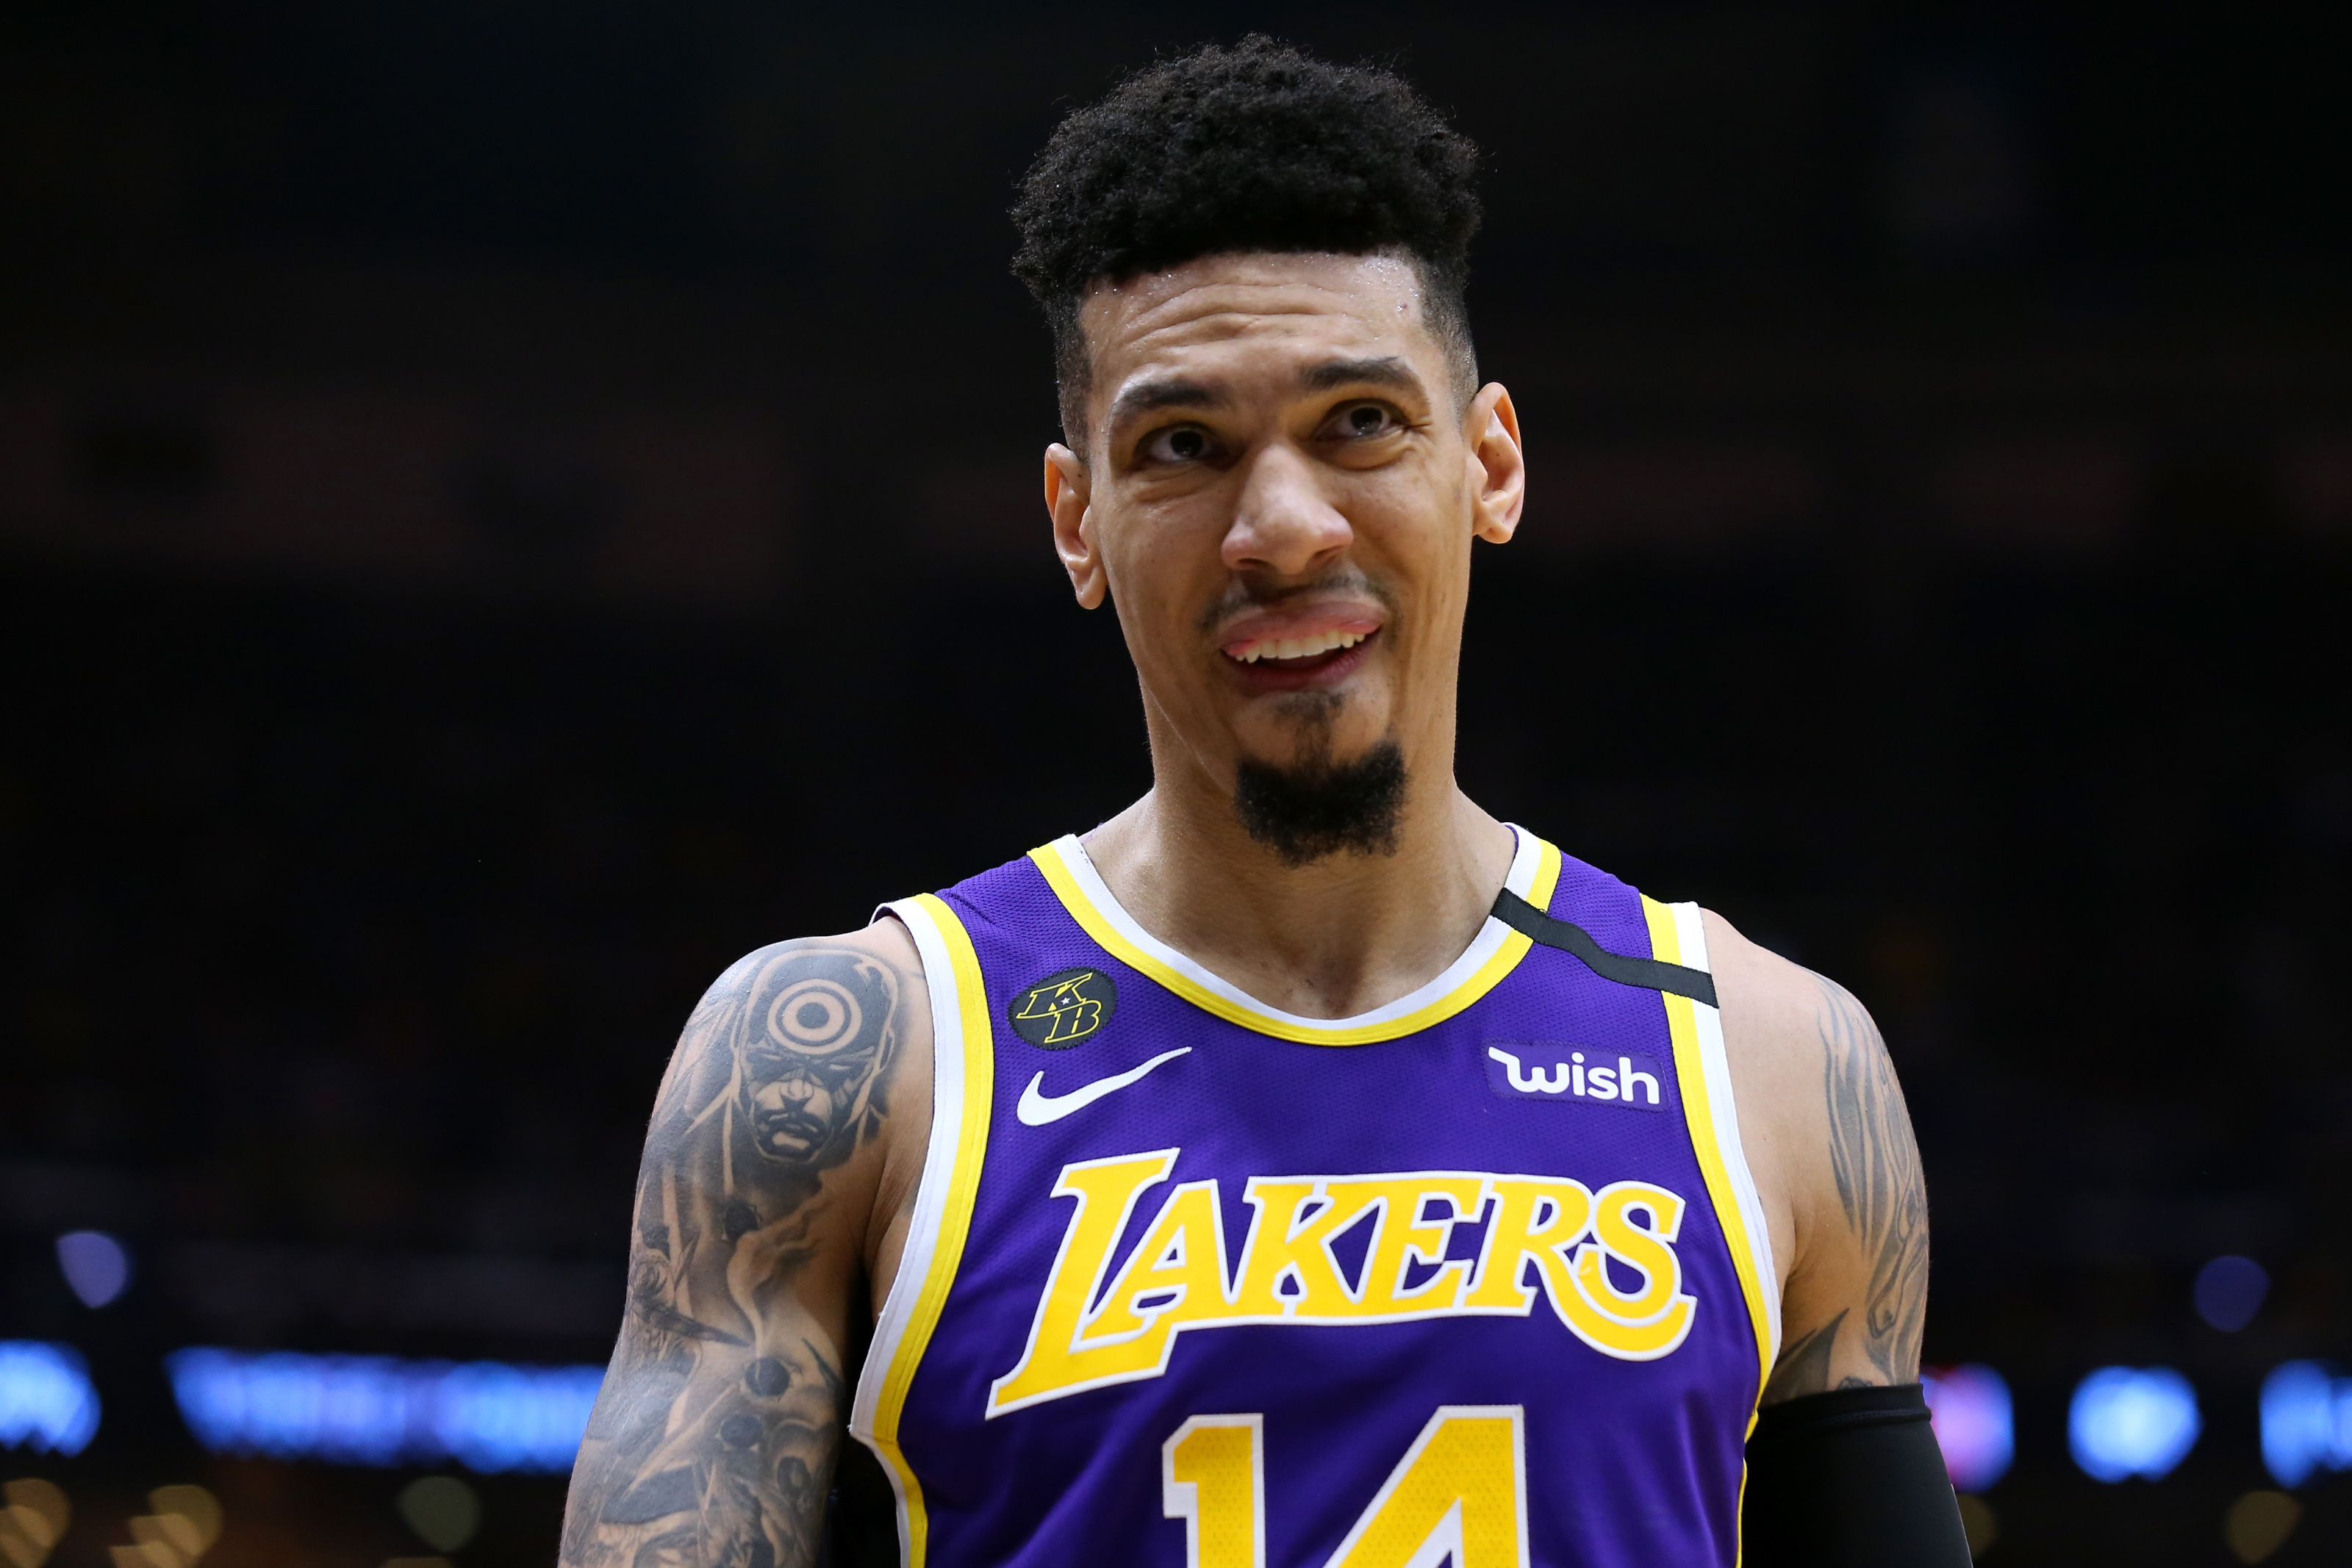 Lakers Twitter Has Jokes For The Struggling Danny Green